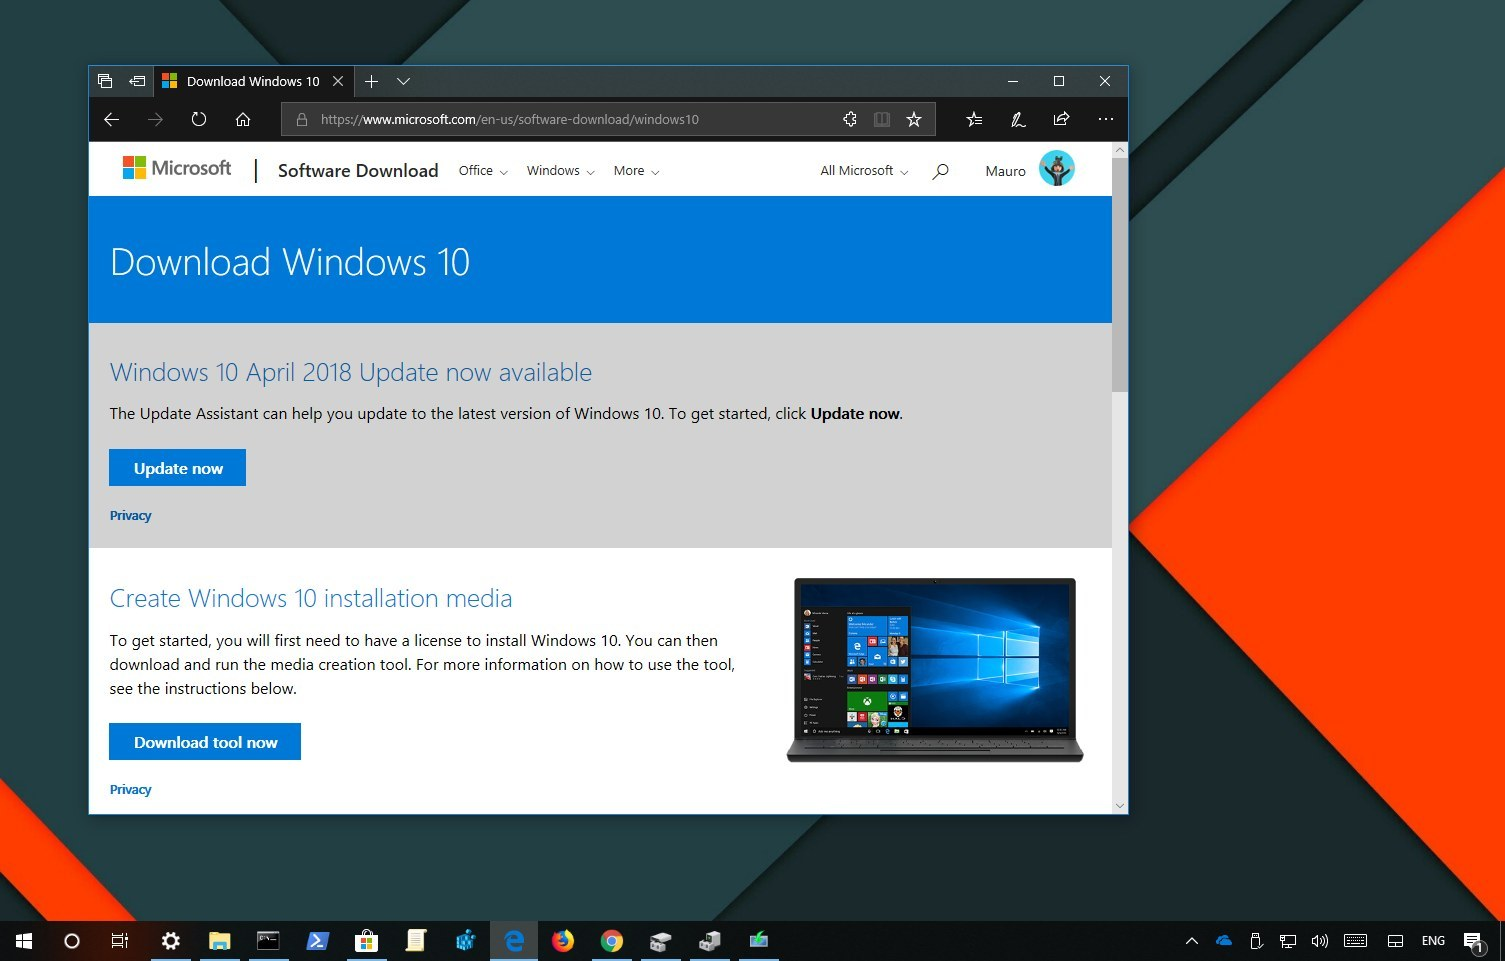 Windows 10 version 1803 (April 2018 Update) ISO download